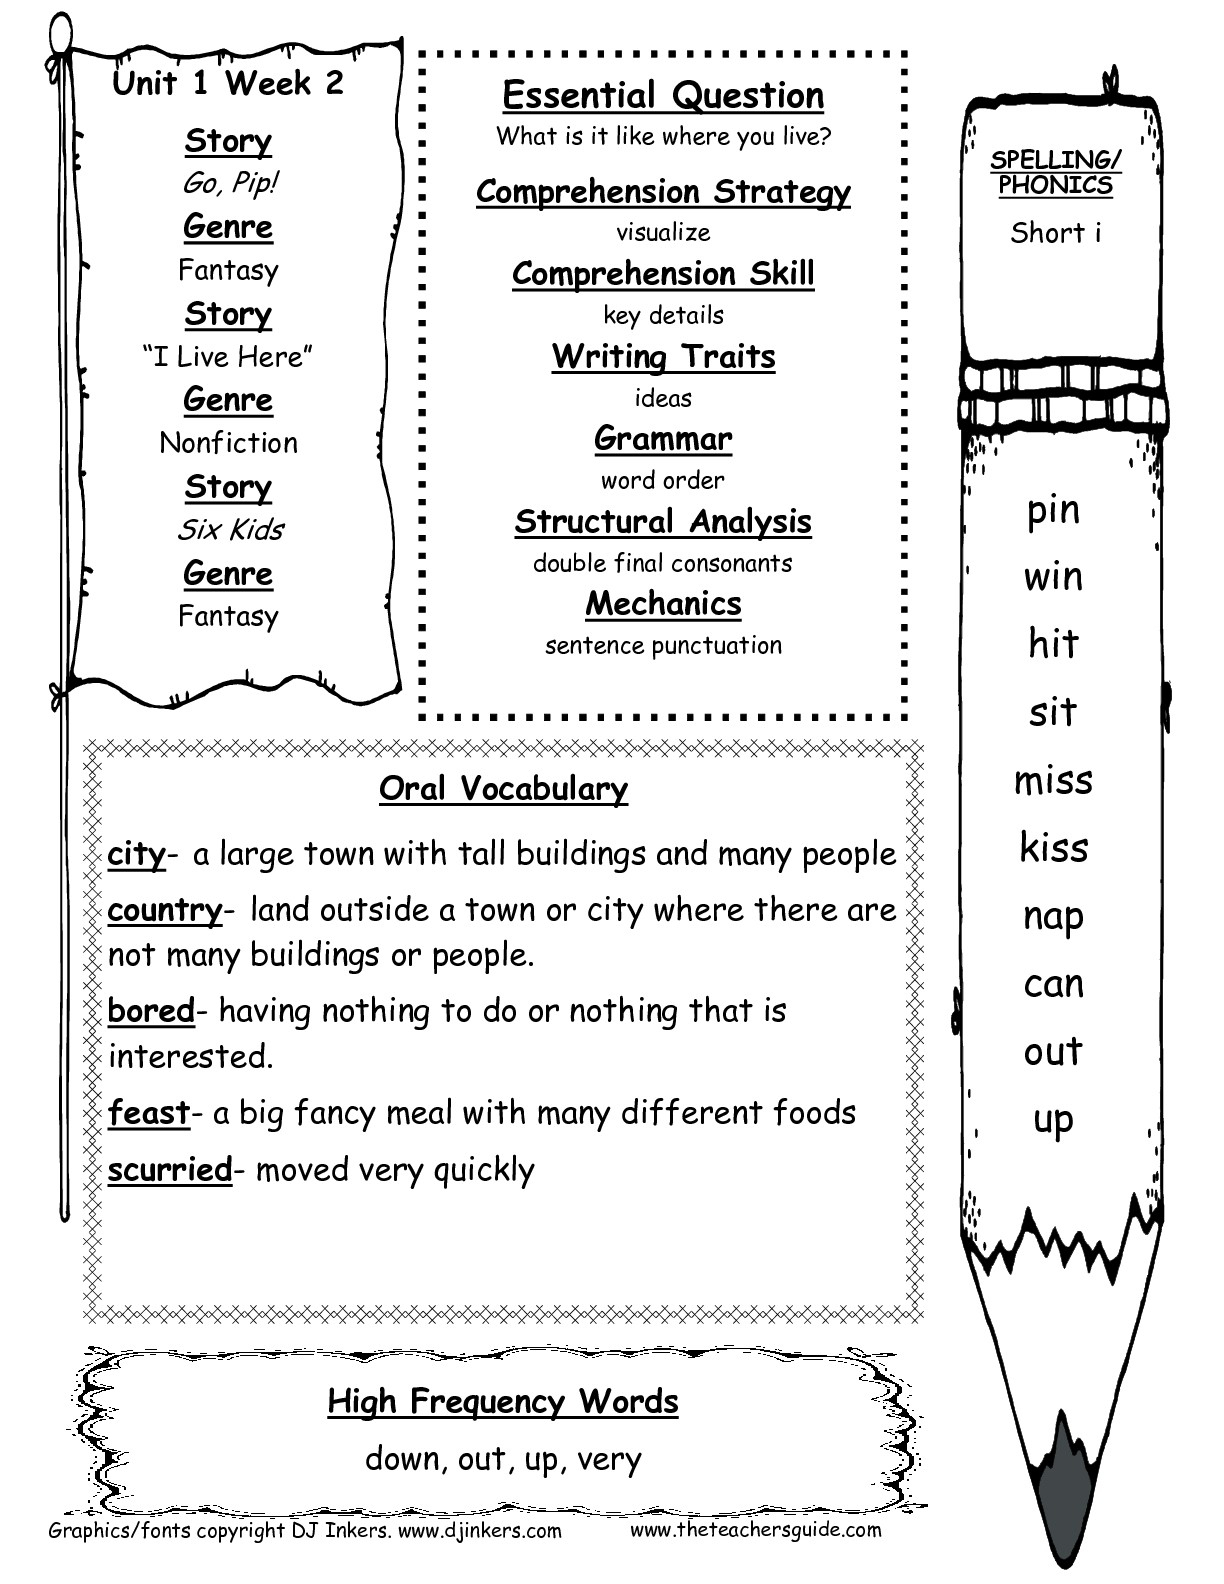 Mcgraw-Hill Wonders First Grade Resources And Printouts | 1St Grade Vocabulary Worksheets Printable